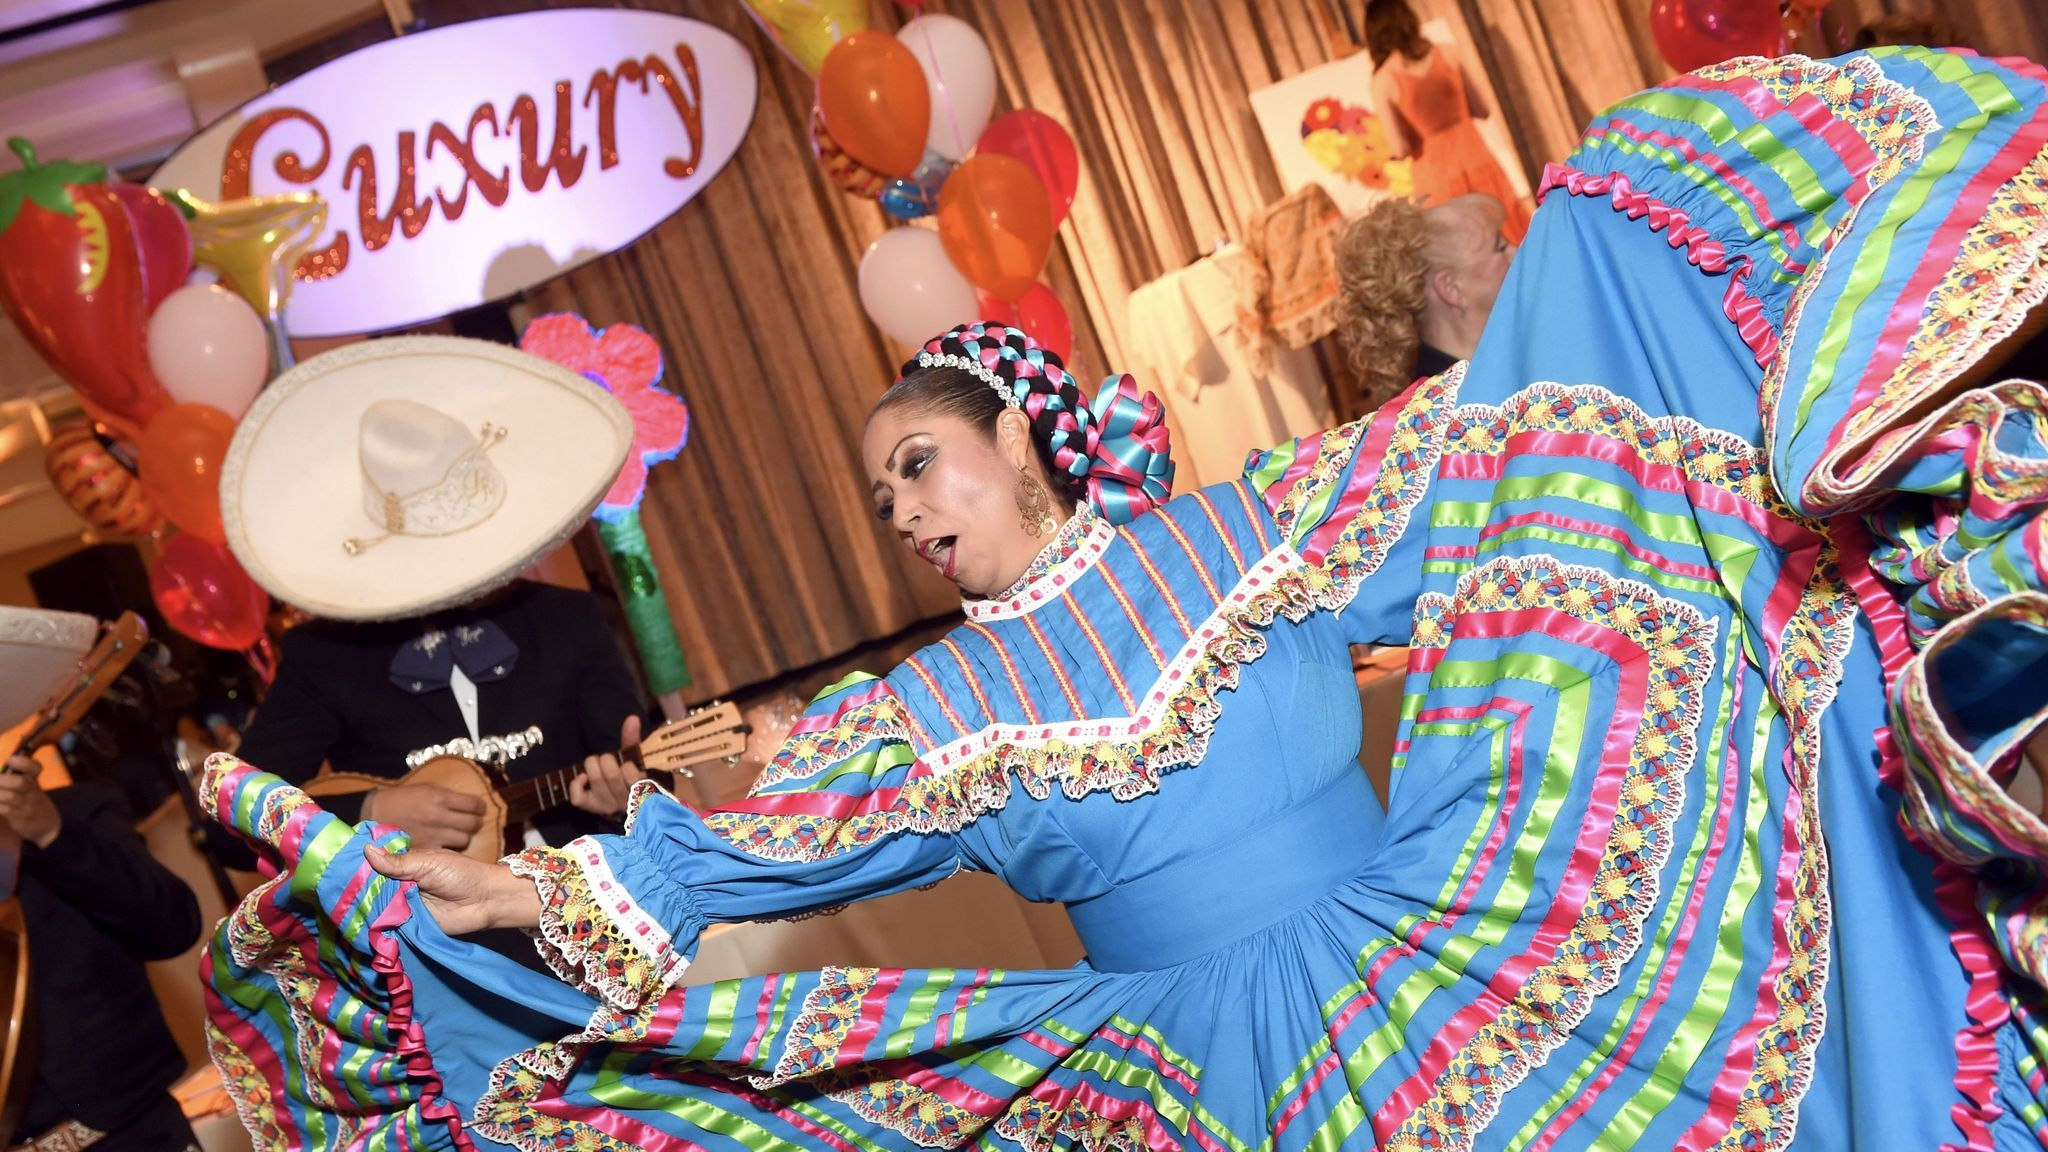 Mariachi performers turn up the festive vibe at the Race to Erase MS event at the Beverly Hilton on May 5.